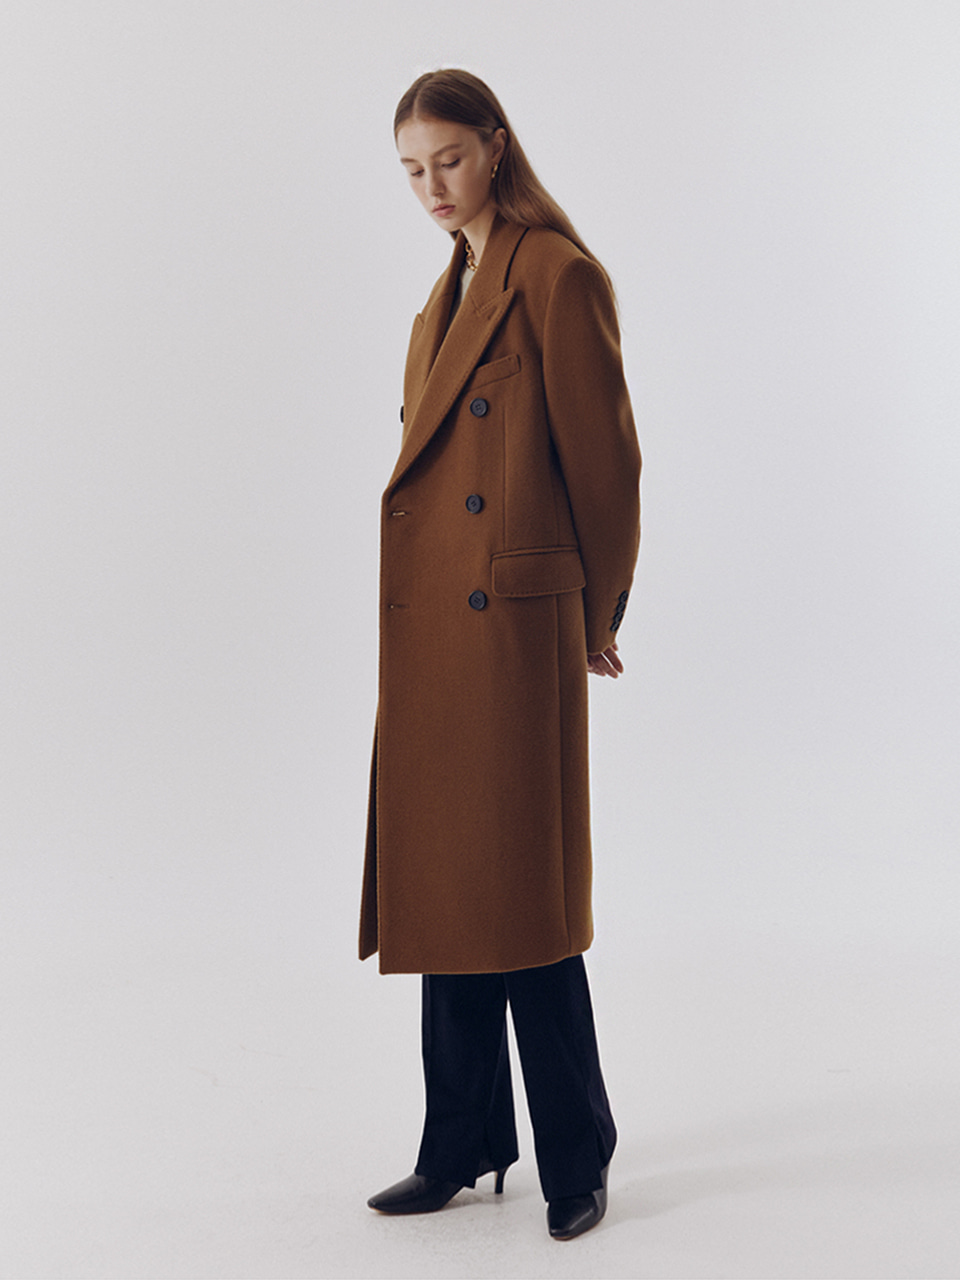 UNISEX NEW TAILORED DOUBLE-BREASTED CASHMERE COAT OLIVE CAMEL